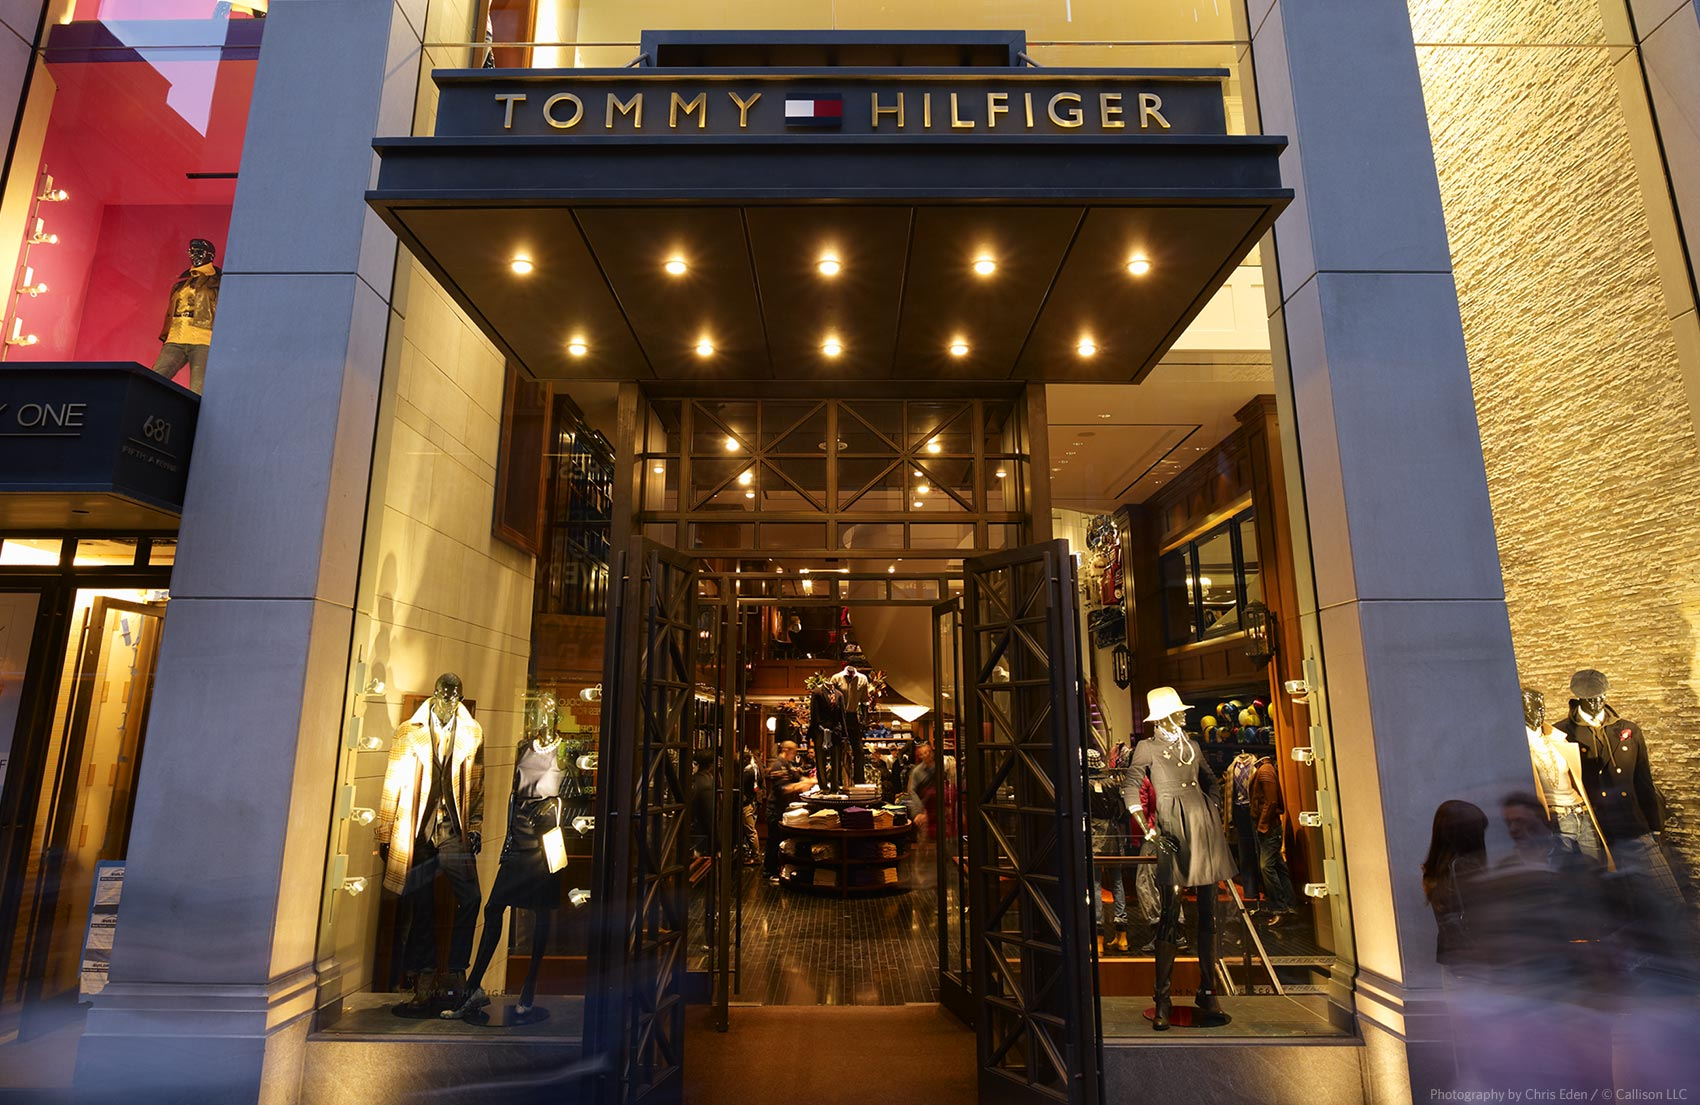 Tommy Hilfiger, Fifth Avenue, NYC - Exterior storefront